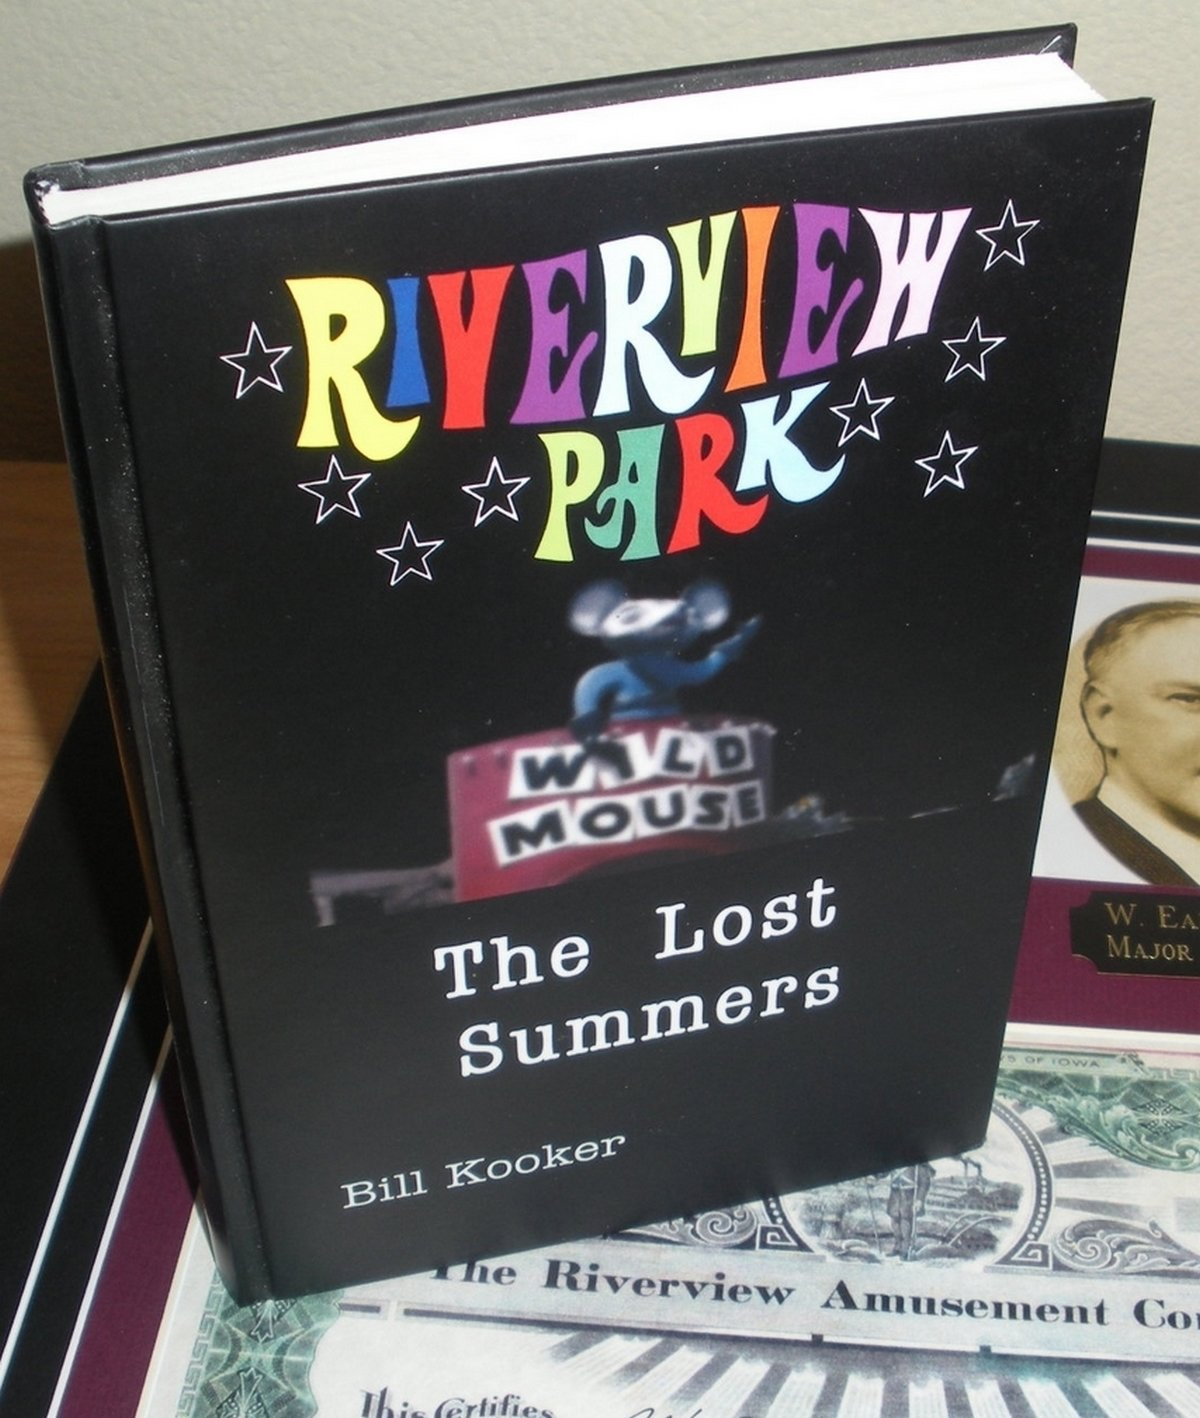 Riverview Park: The Lost Summers book -Hard Cover, ImageWrap